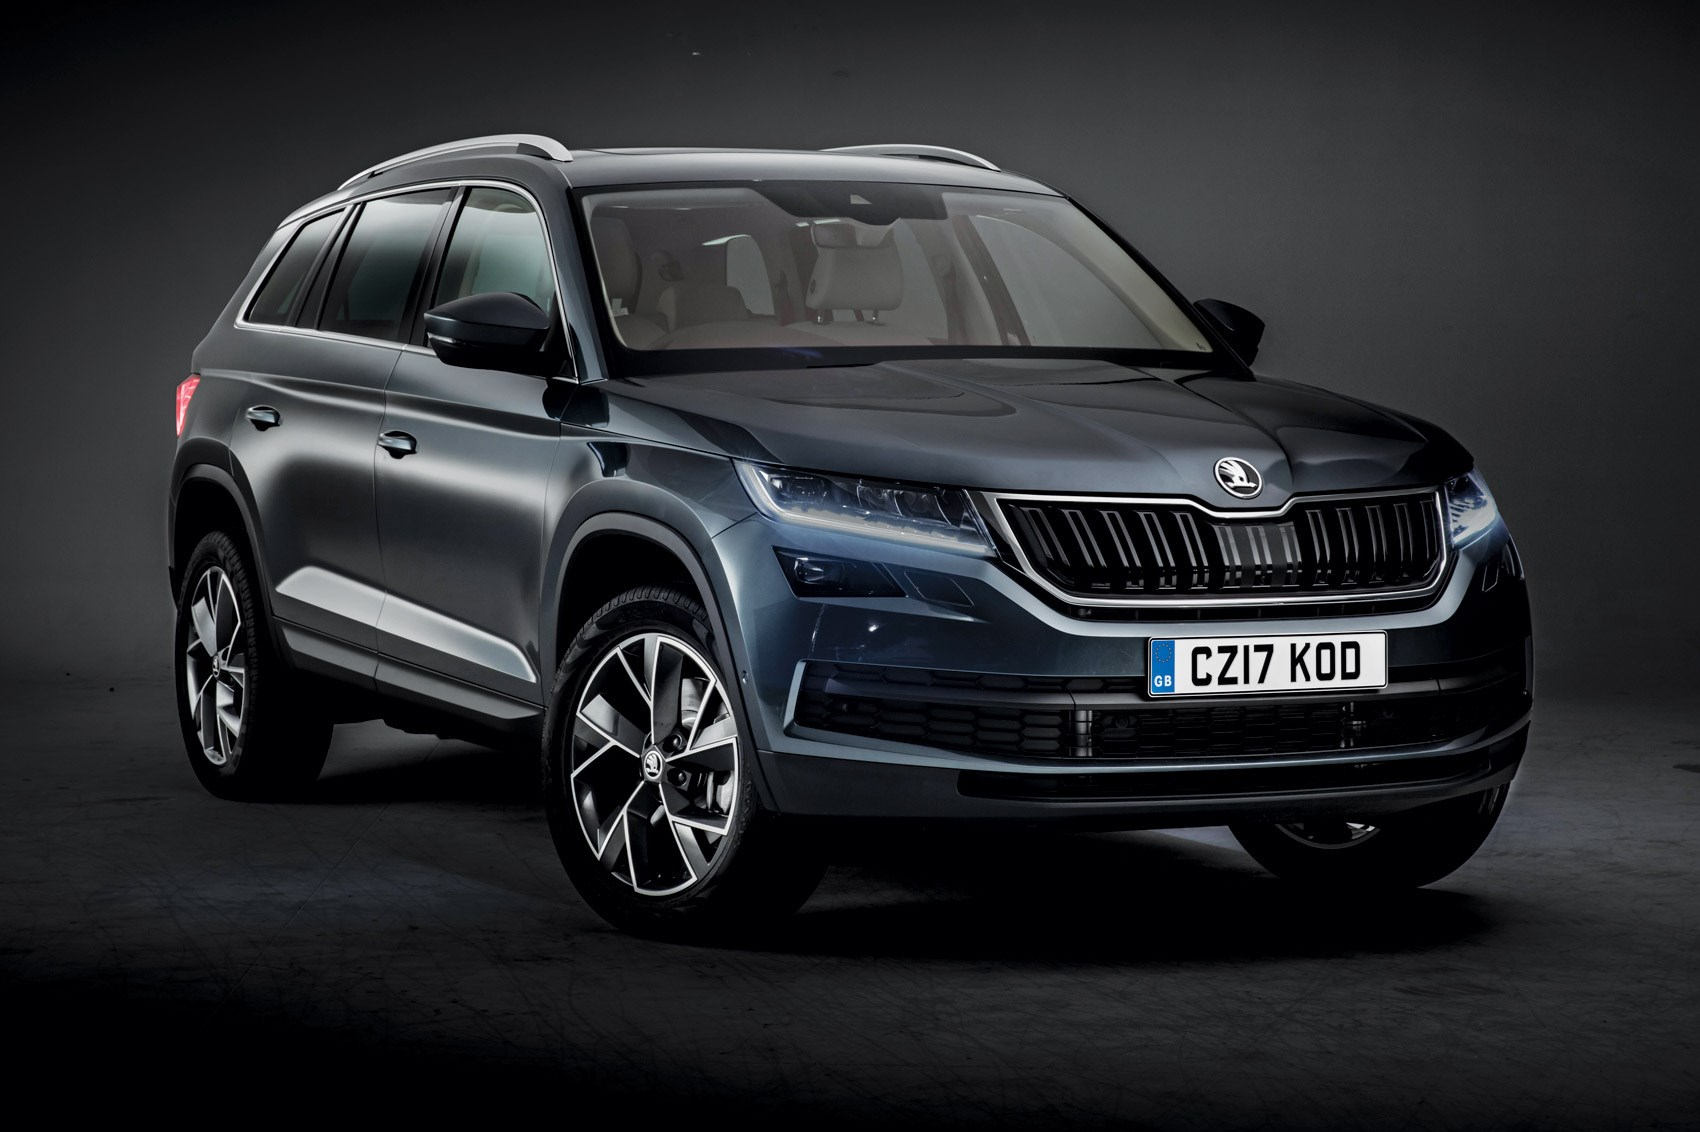 skoda reveals new kodiaq suv in full by car magazine. Black Bedroom Furniture Sets. Home Design Ideas